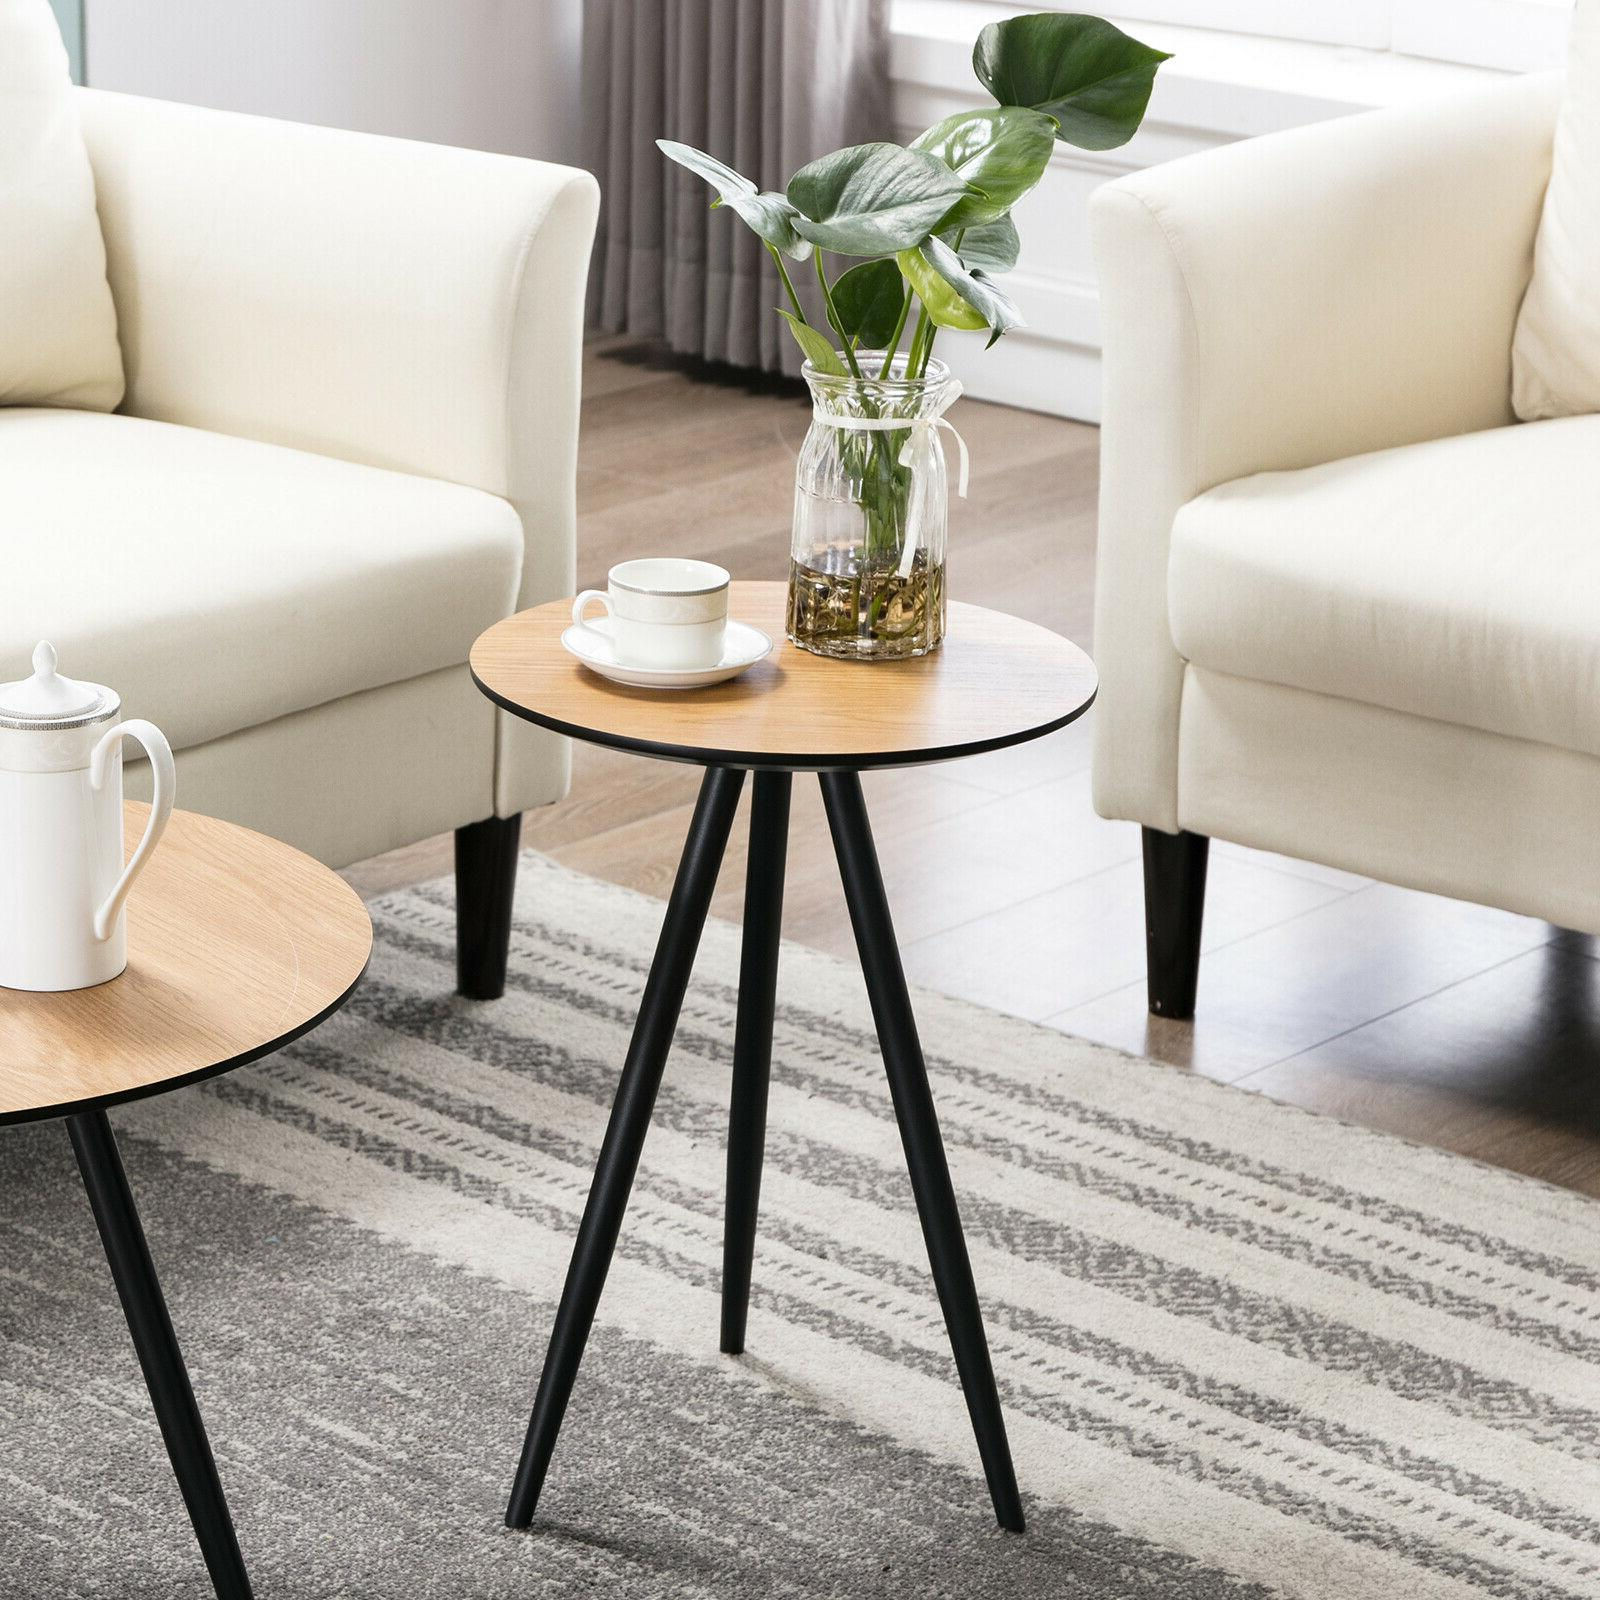 Modern Table Round Side Wood Living Room Home